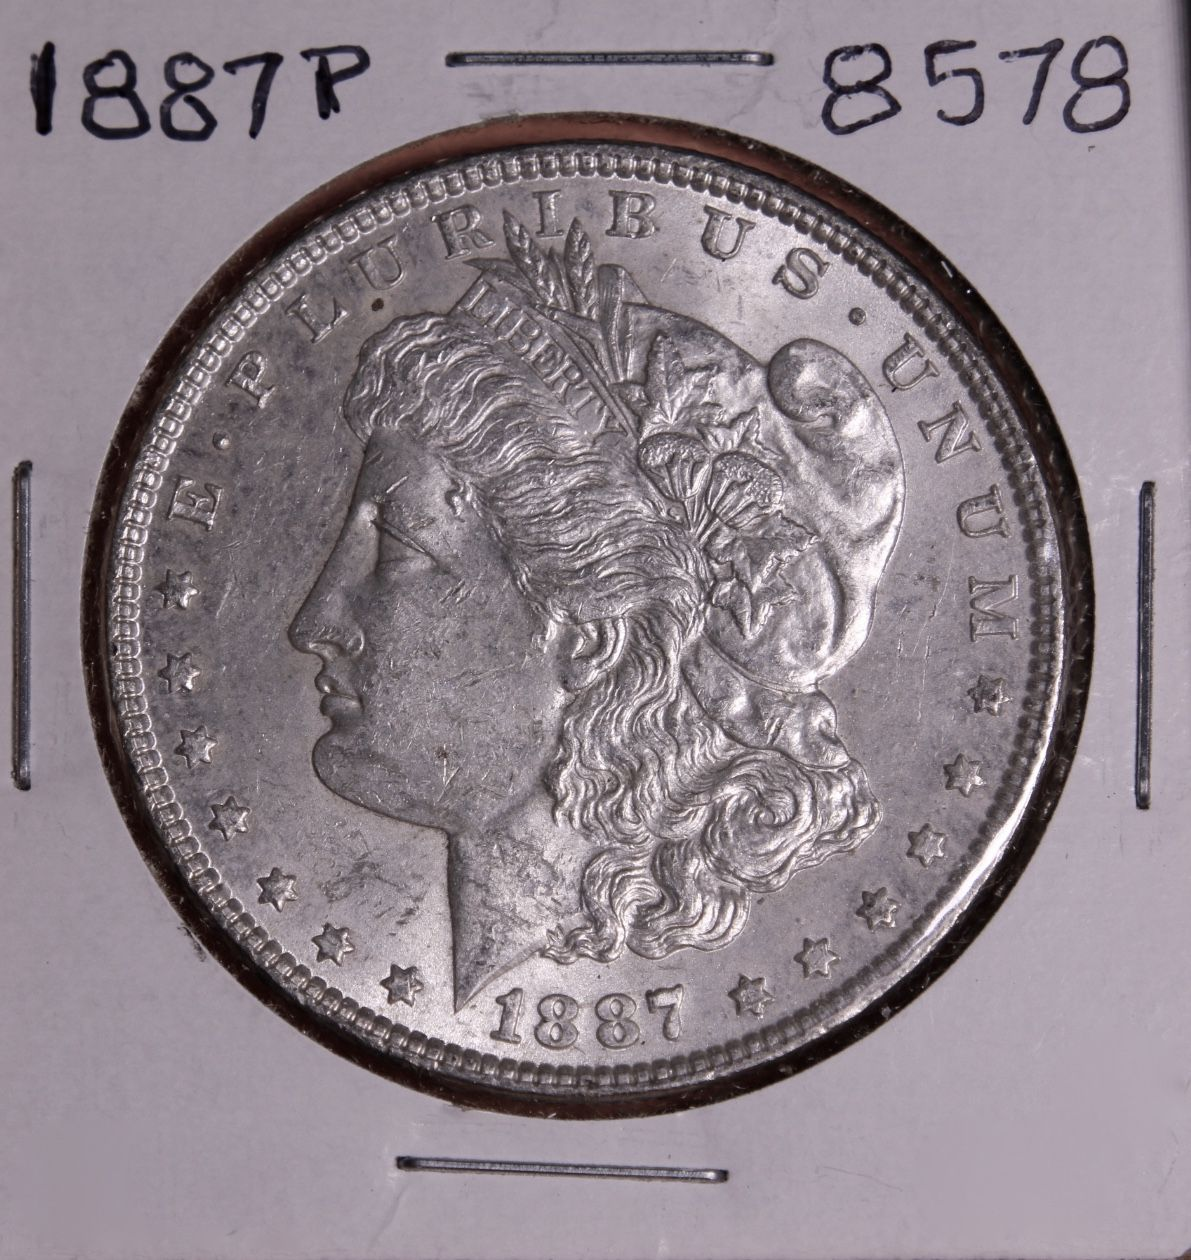 1887 P Morgan Silver Dollar 8578 Au For Sale Buy Now